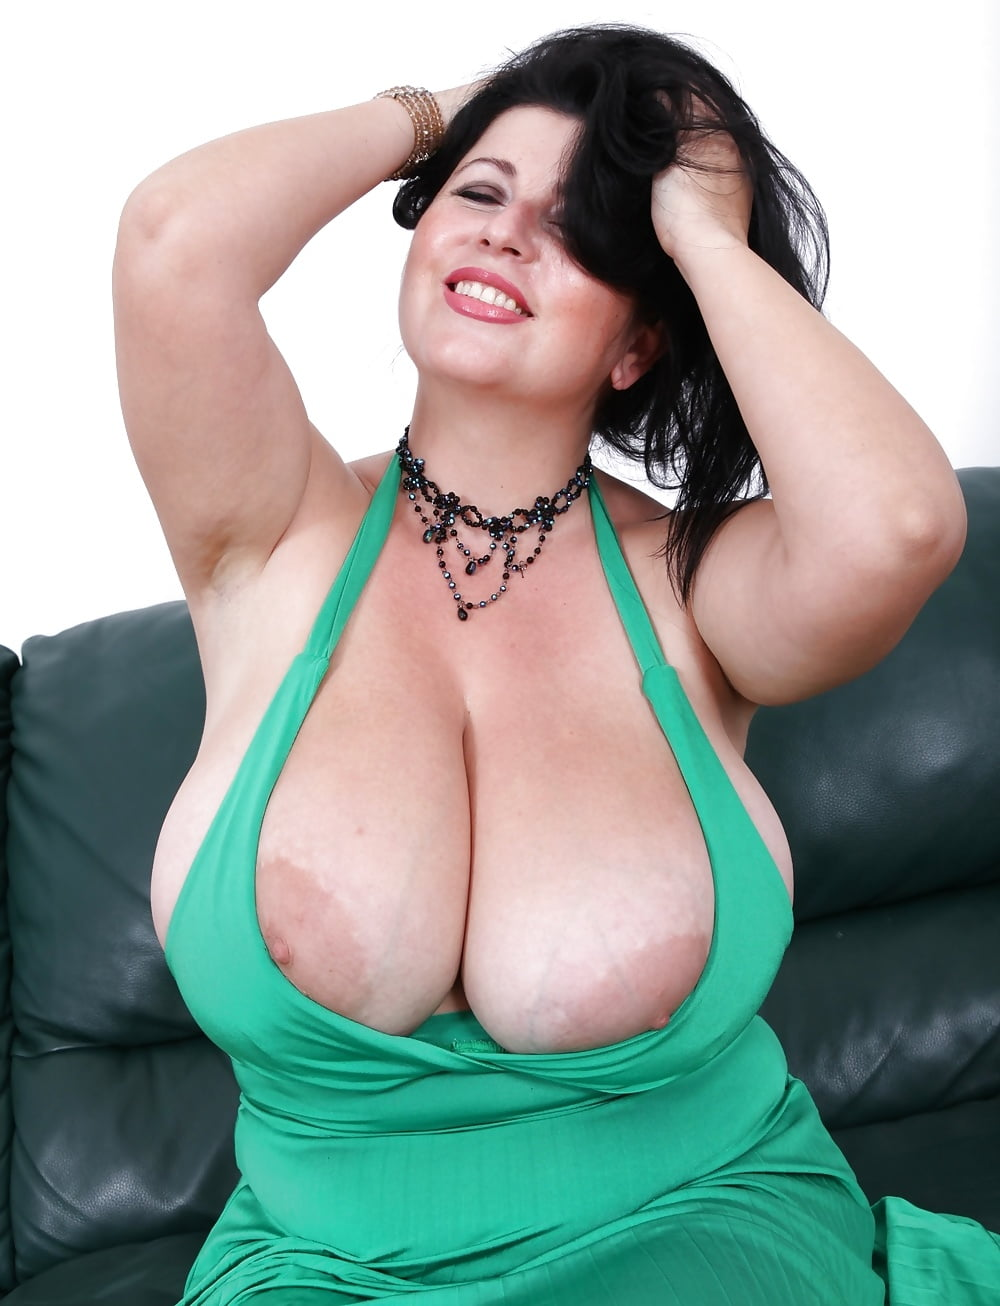 mature-xxl-tits-in-tight-tops